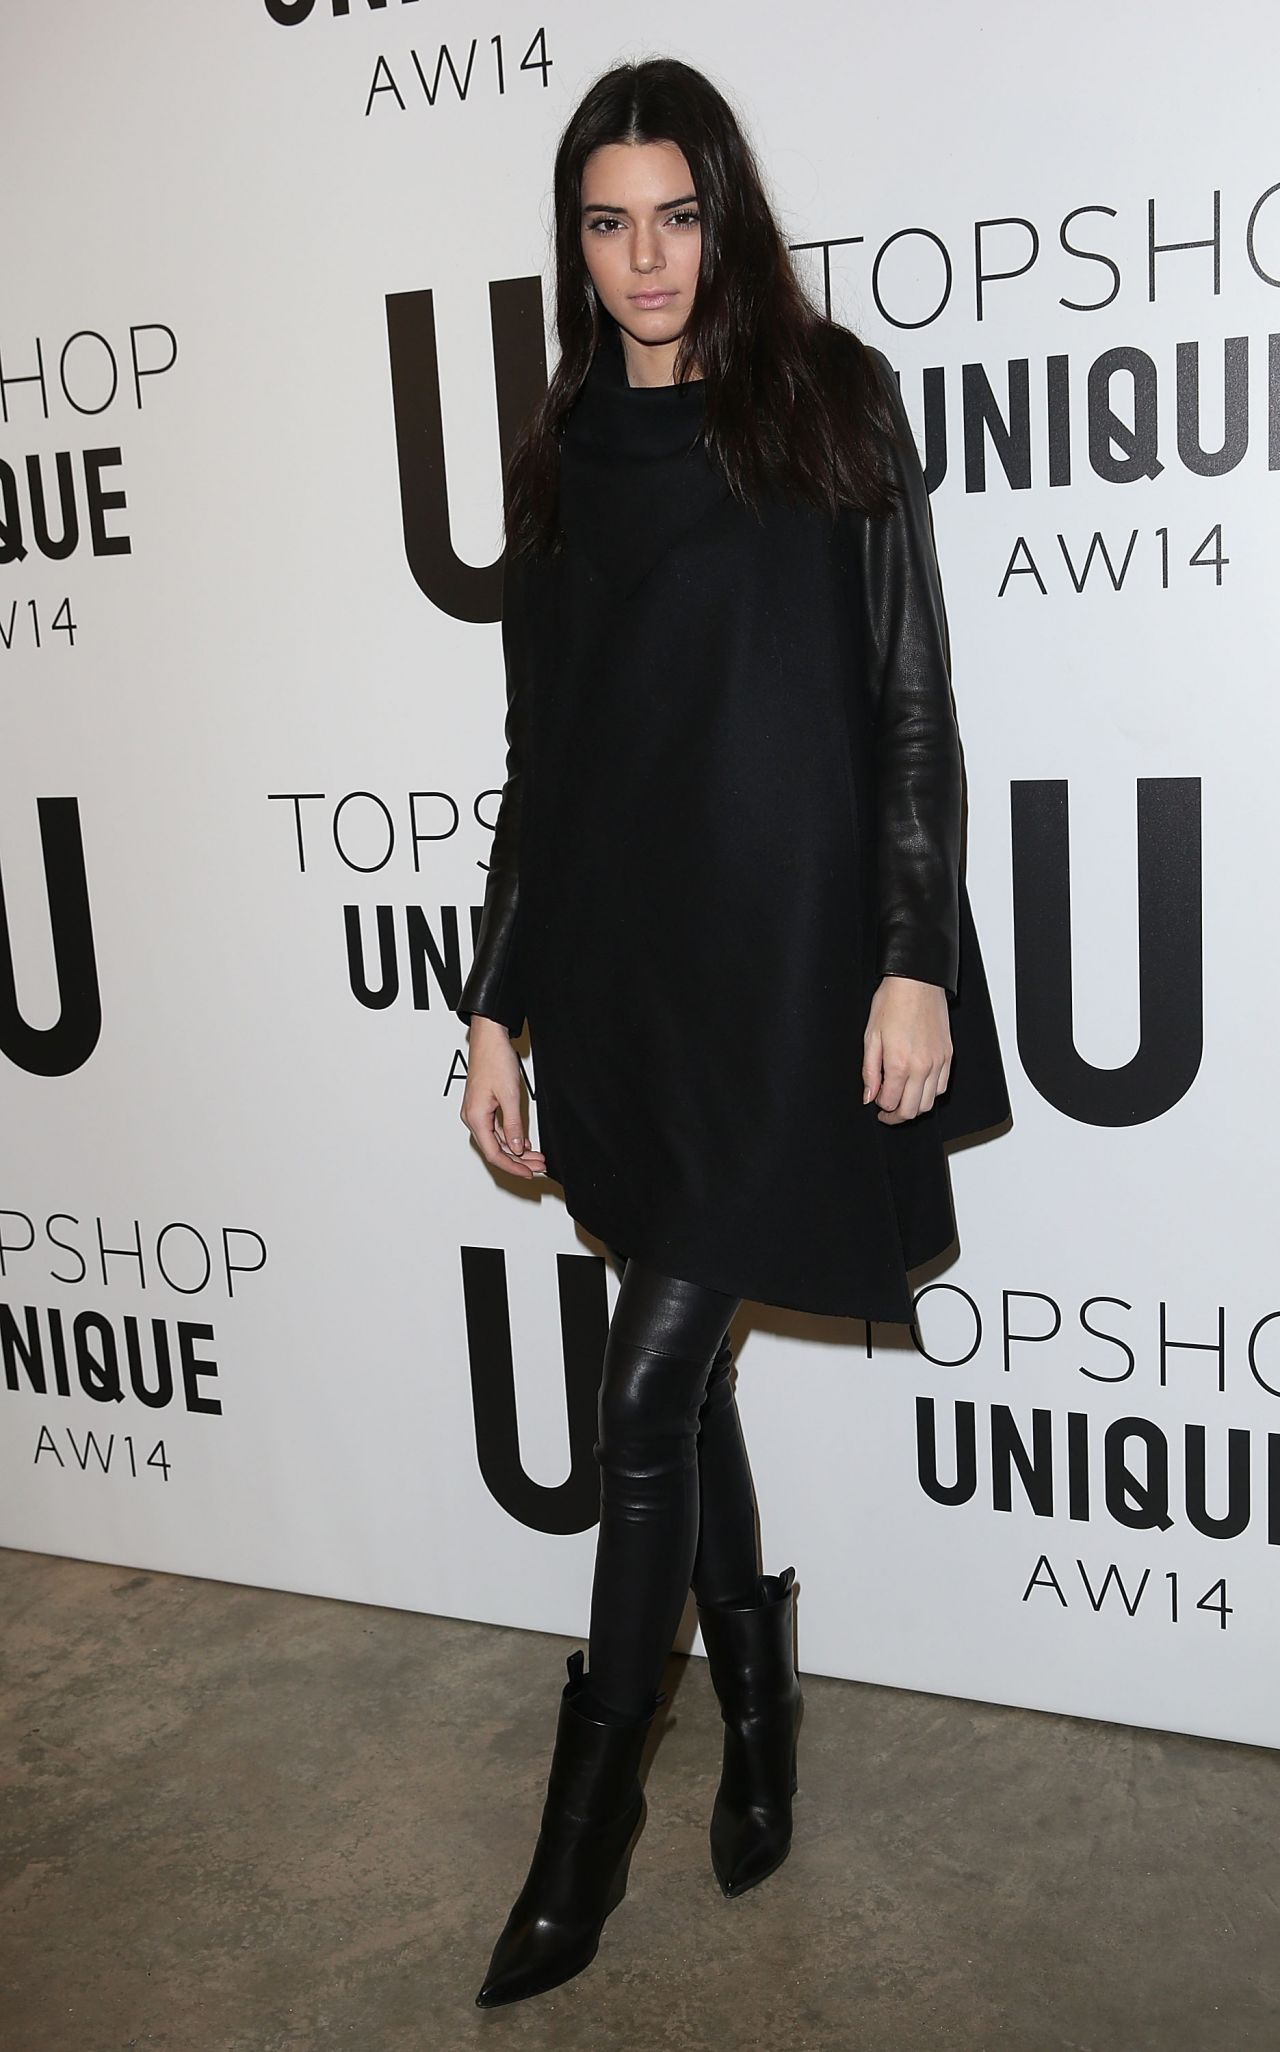 Kendall Jenner - Topshop Unique Fashion Show - London, February 2014